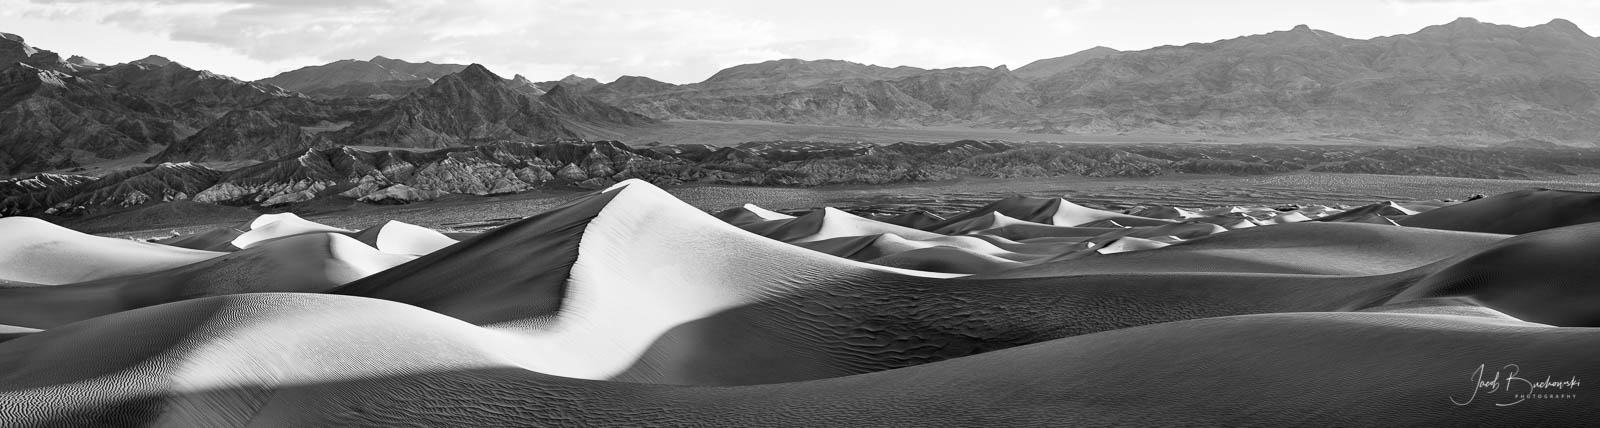 Death Valley National Park, Death Valley, California